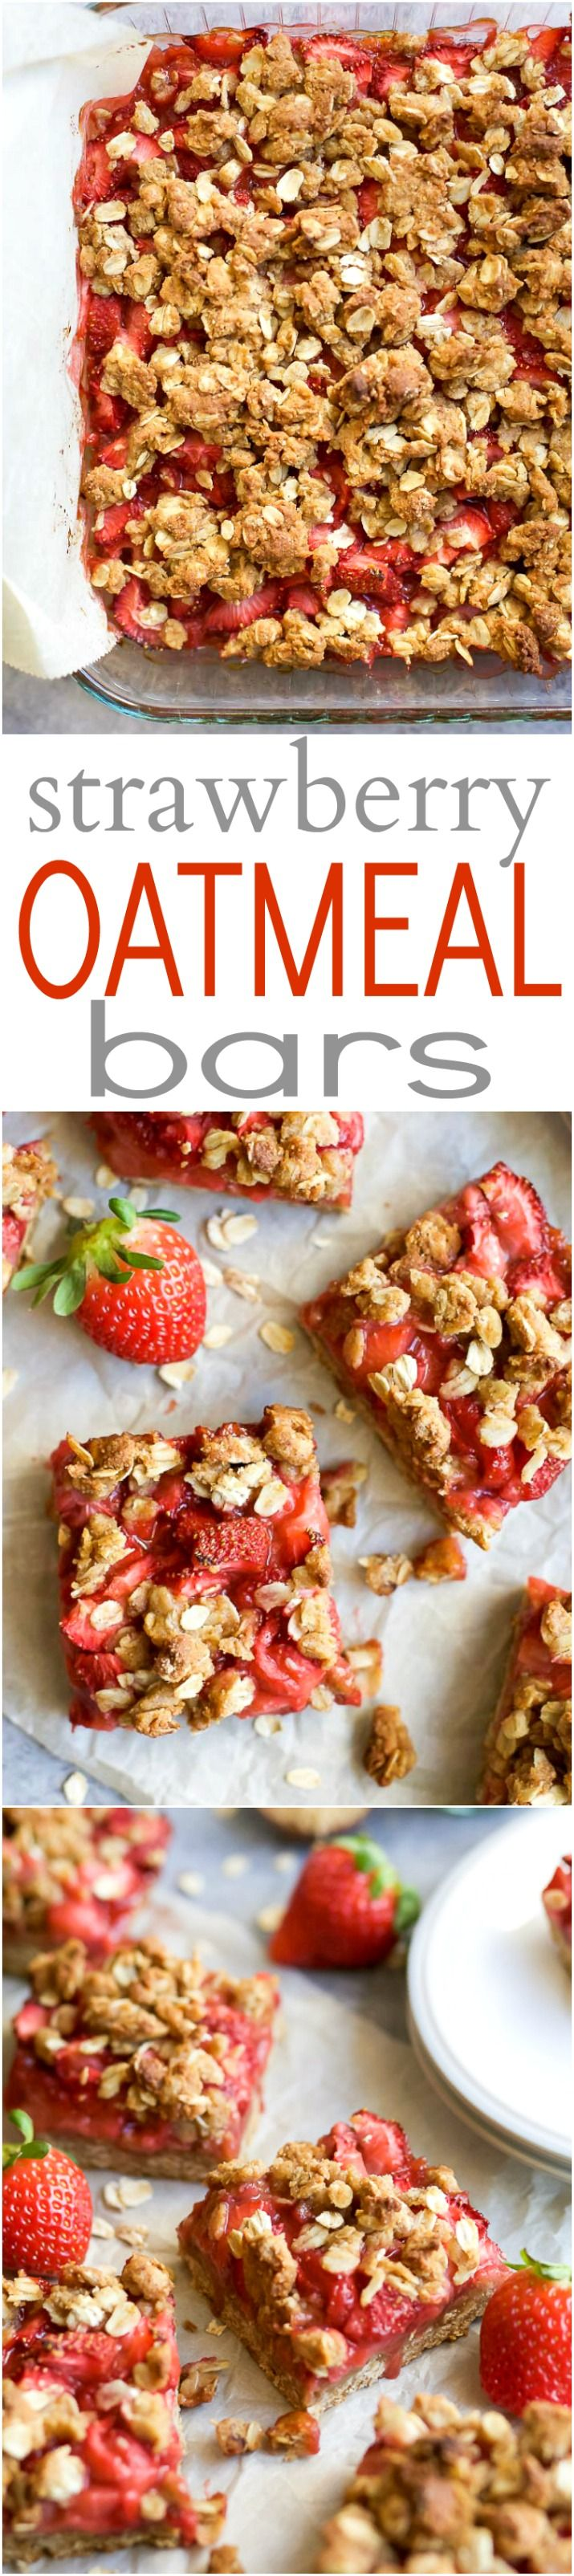 Healthy STRAWBERRY OATMEAL BARS filled with juicy strawberries and a buttery crumble topping for only 132 calories a serving! Serve it for breakfast, dessert, or eat it as a snack! Just make it! | joyfulhealthyeats.com